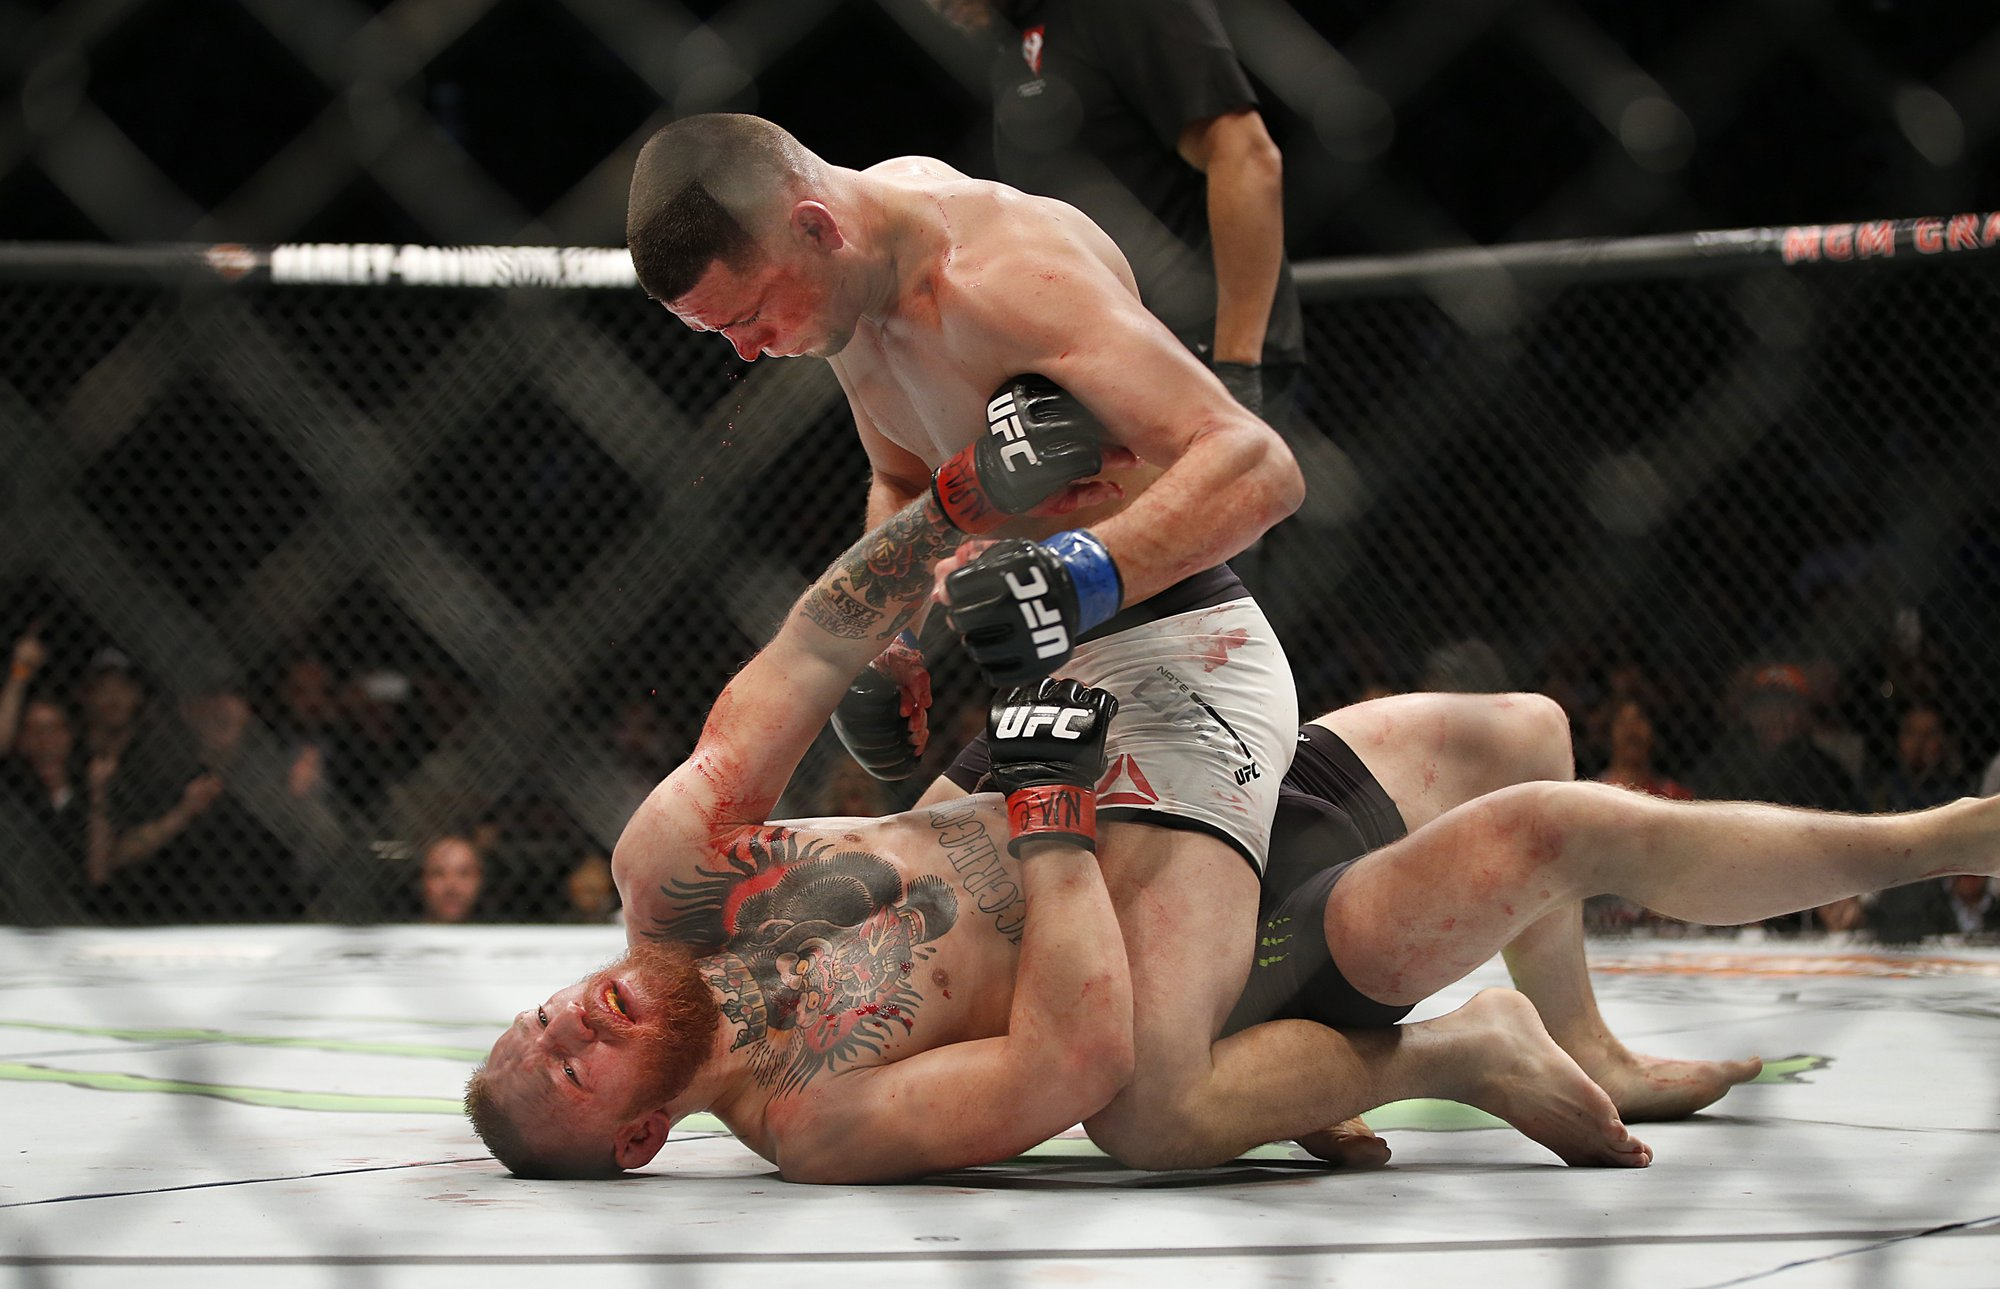 Return of the Mac-killer: Nate Diaz ends hiatus at UFC 241